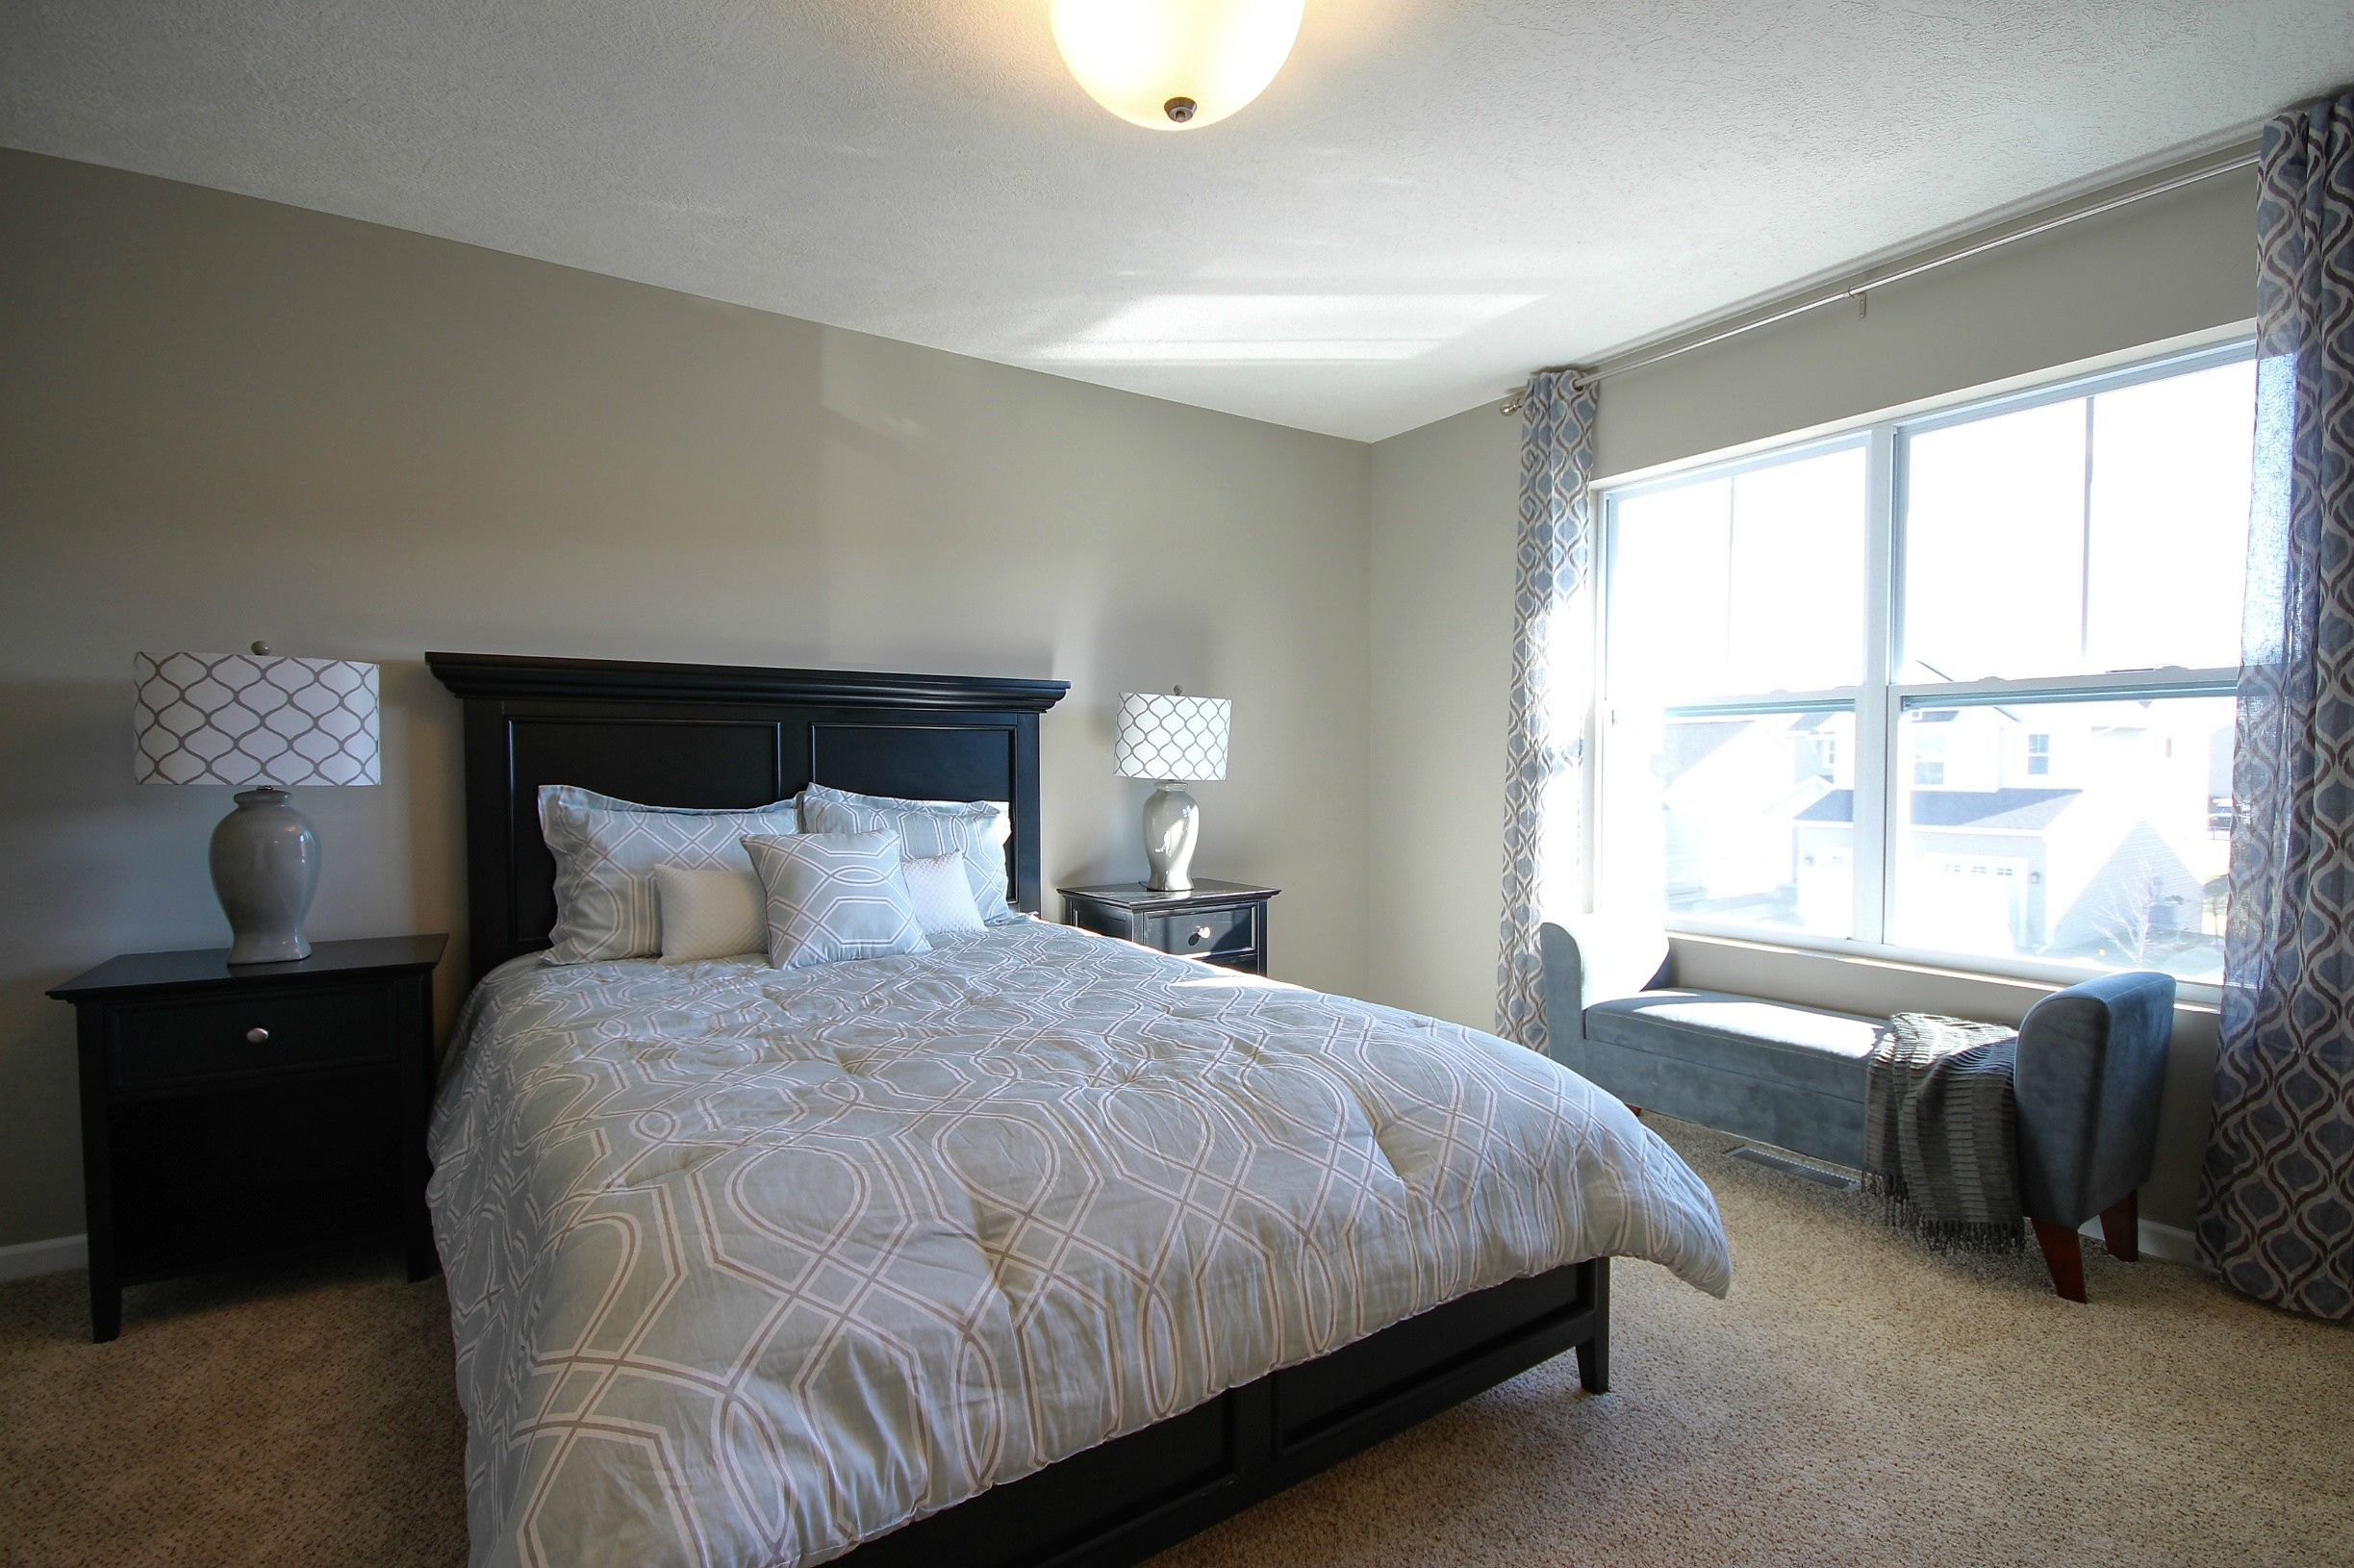 Bedroom featured in the Northwood By Mayberry Homes in Flint, MI